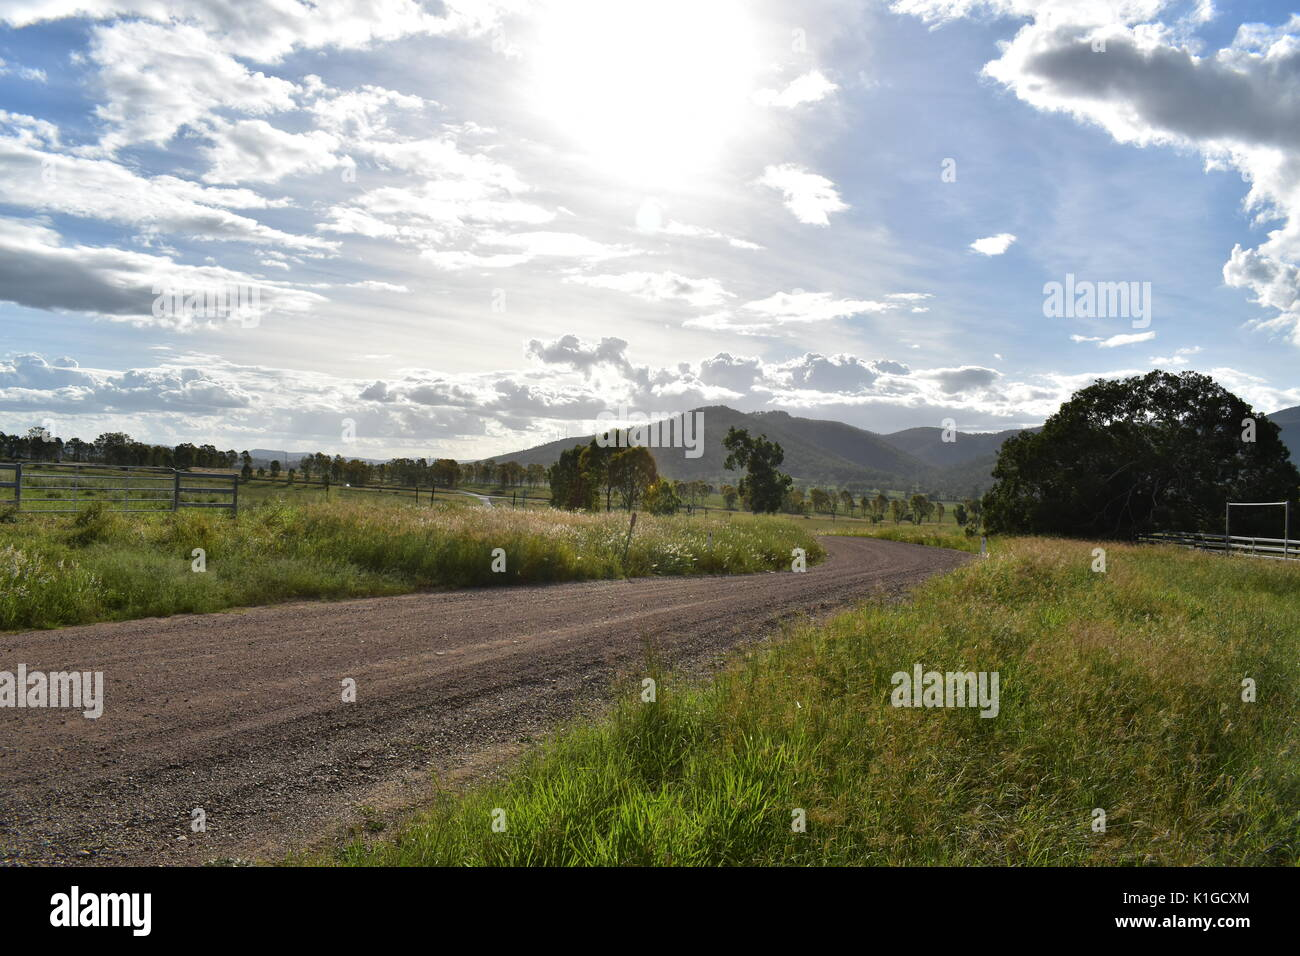 Country Roads - Stock Image